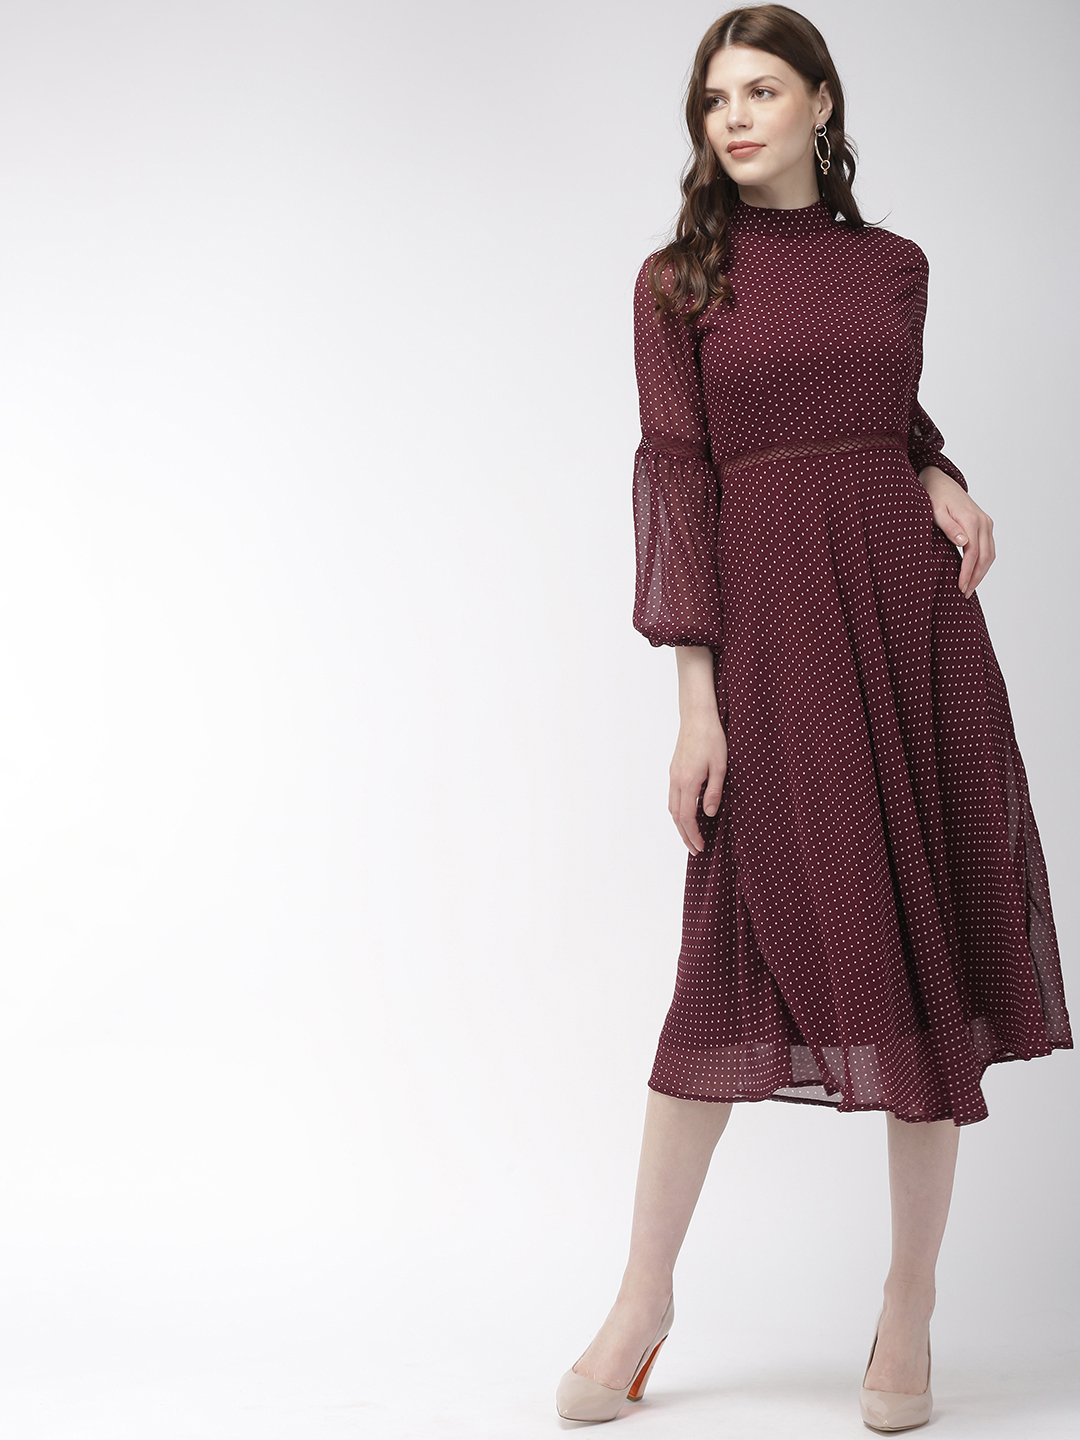 Dresses-The Dotted Grace Midi Dress1